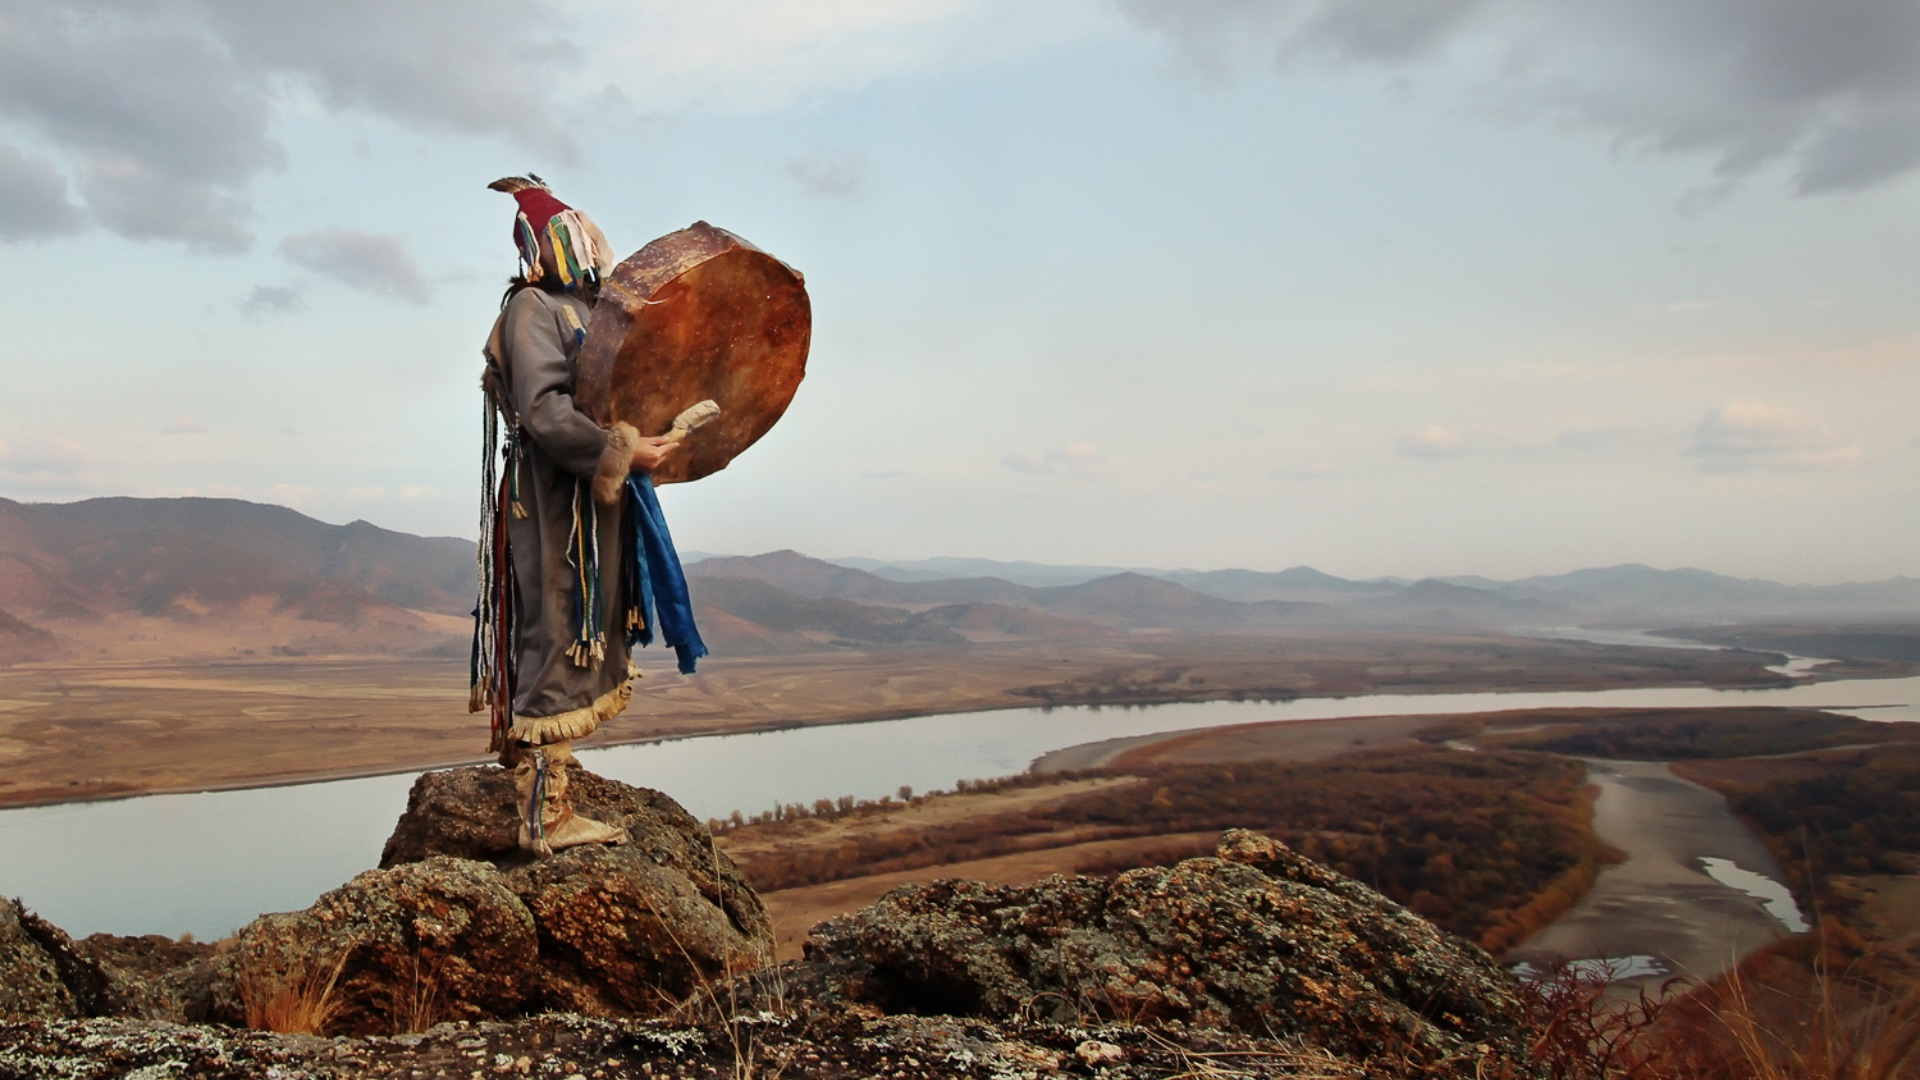 shaman with a drum and feathers in the mountain